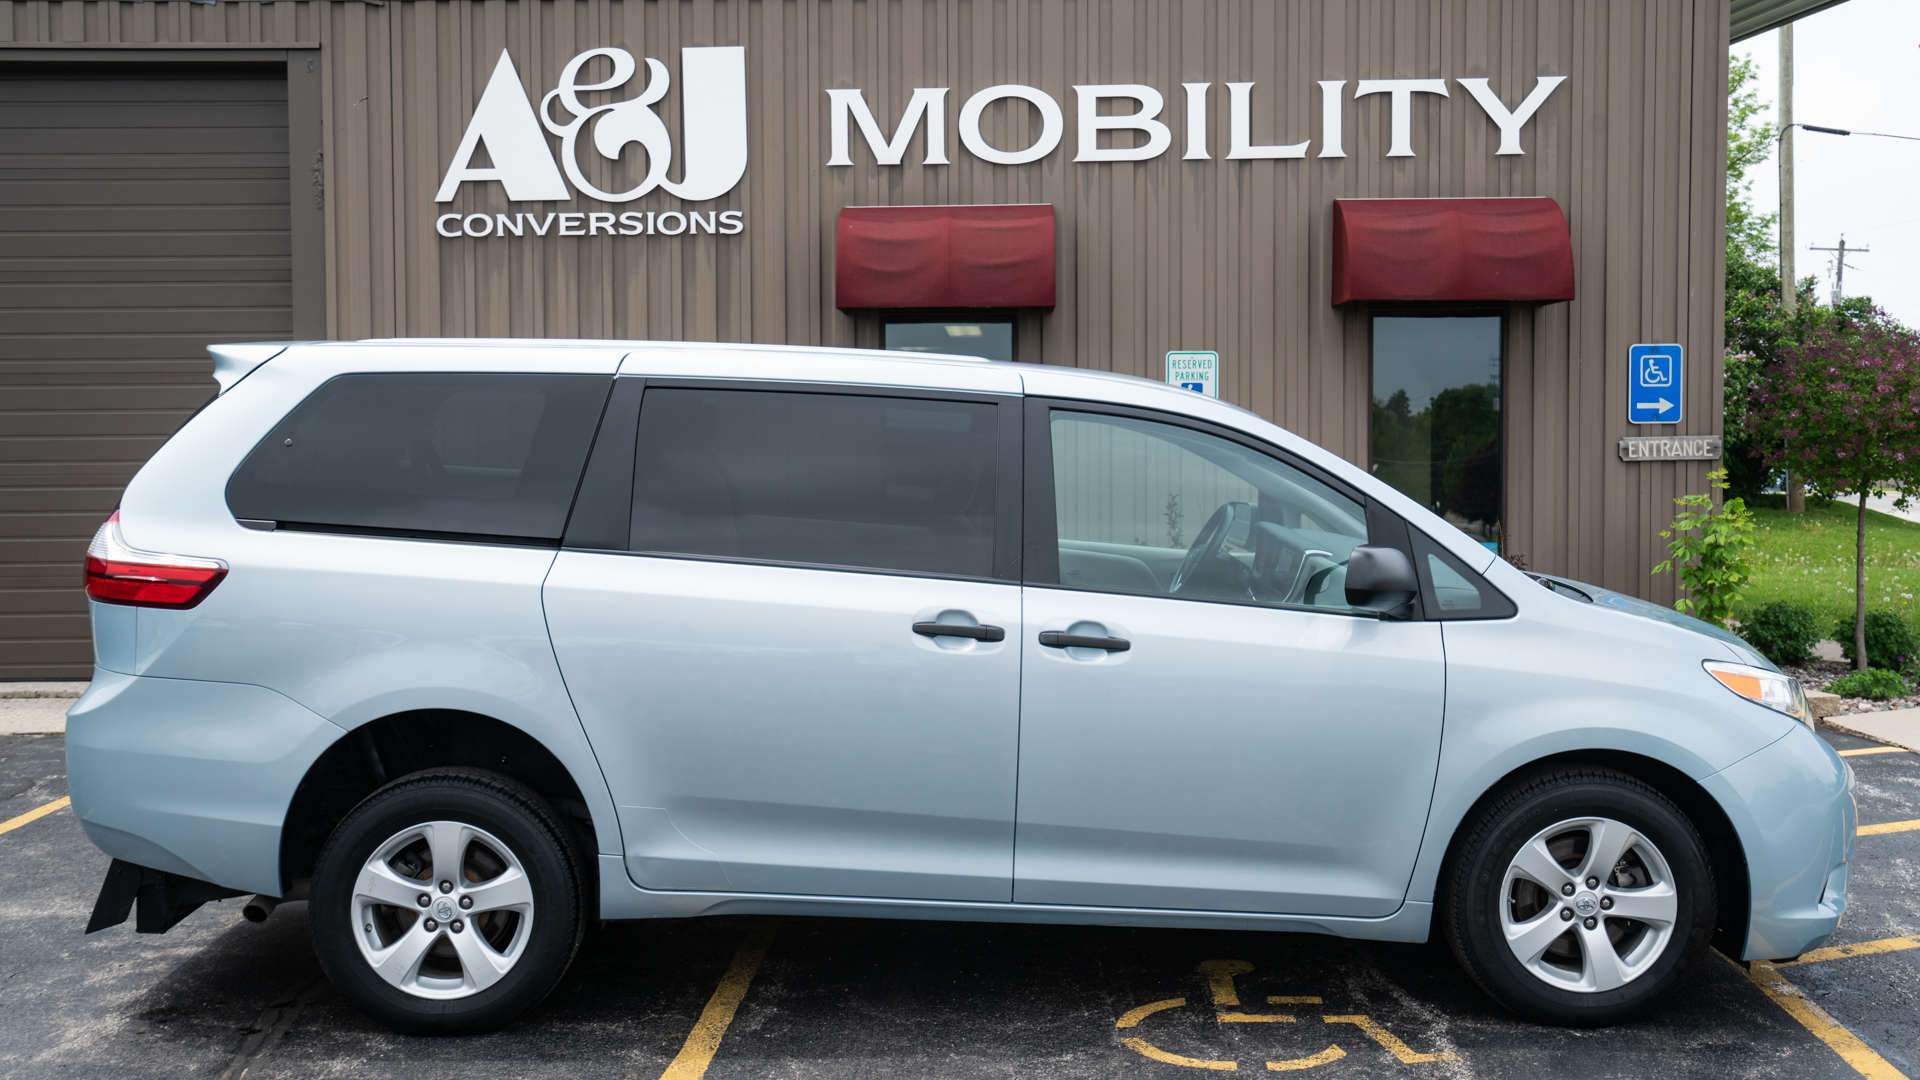 2015 Toyota Sienna | Conversion: Freedom Motors Manual Toyota Rear Entry